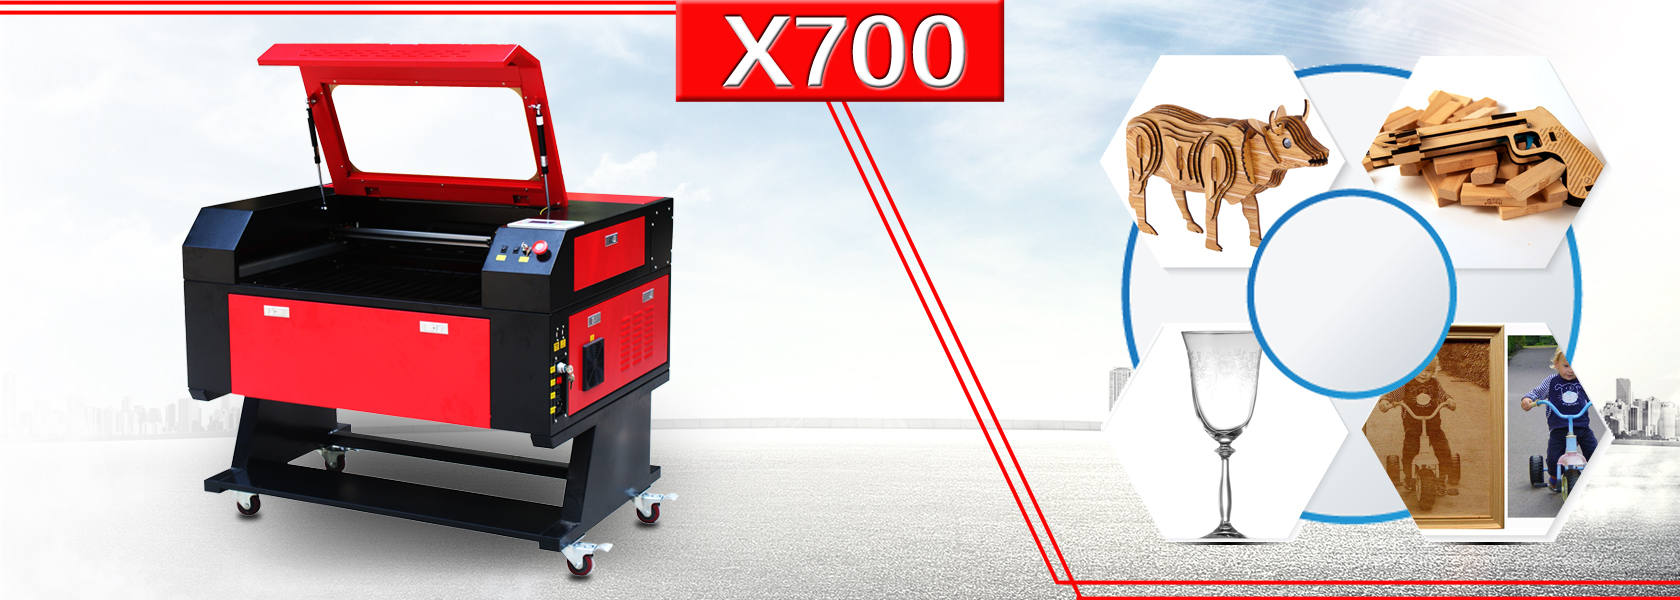 X700 laser engraver machine